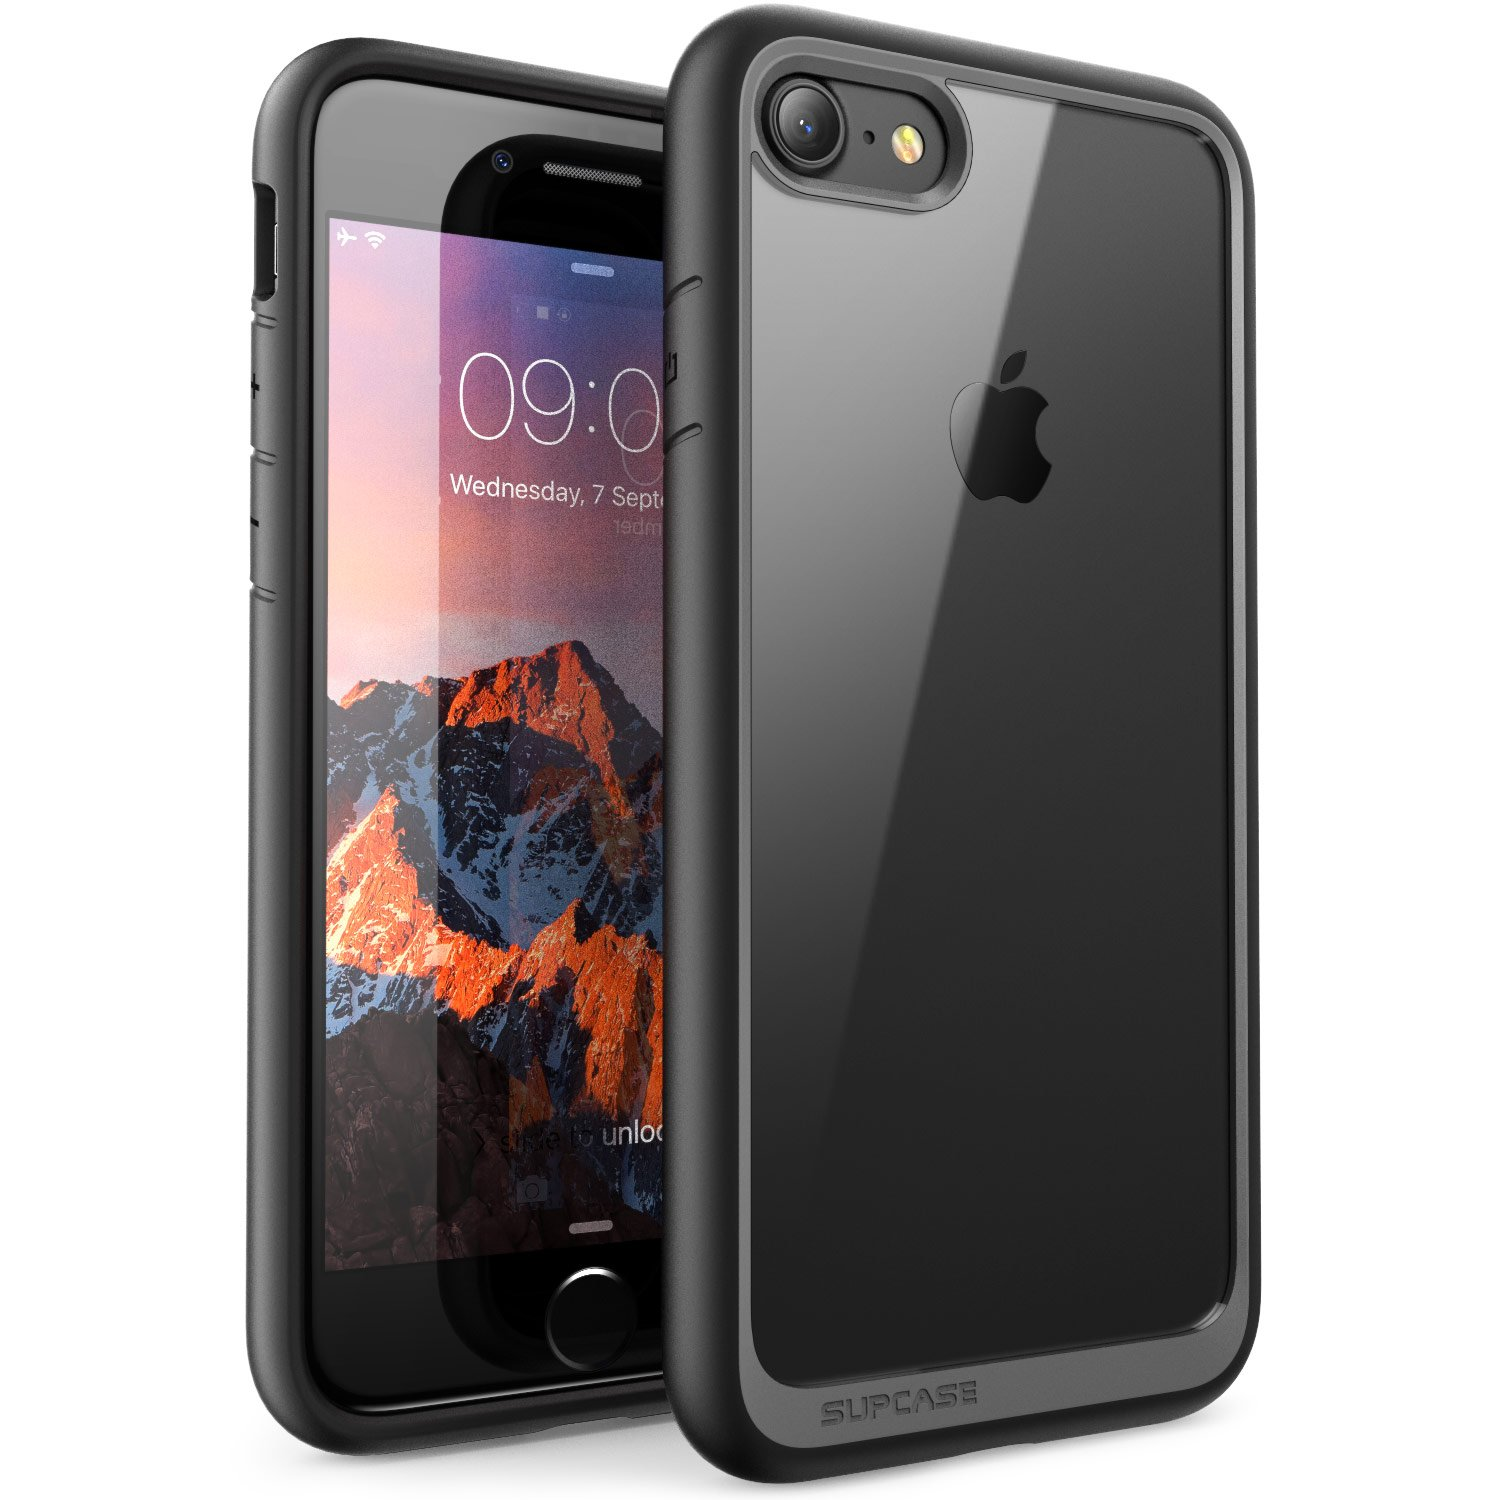 iPhone 7 Case, iPhone 8 Case, SUPCASE Unicorn Beetle Style Premium Hybrid Protective Clear Case for Apple iPhone 7 2016 / iPhone 8 2017 (Black)